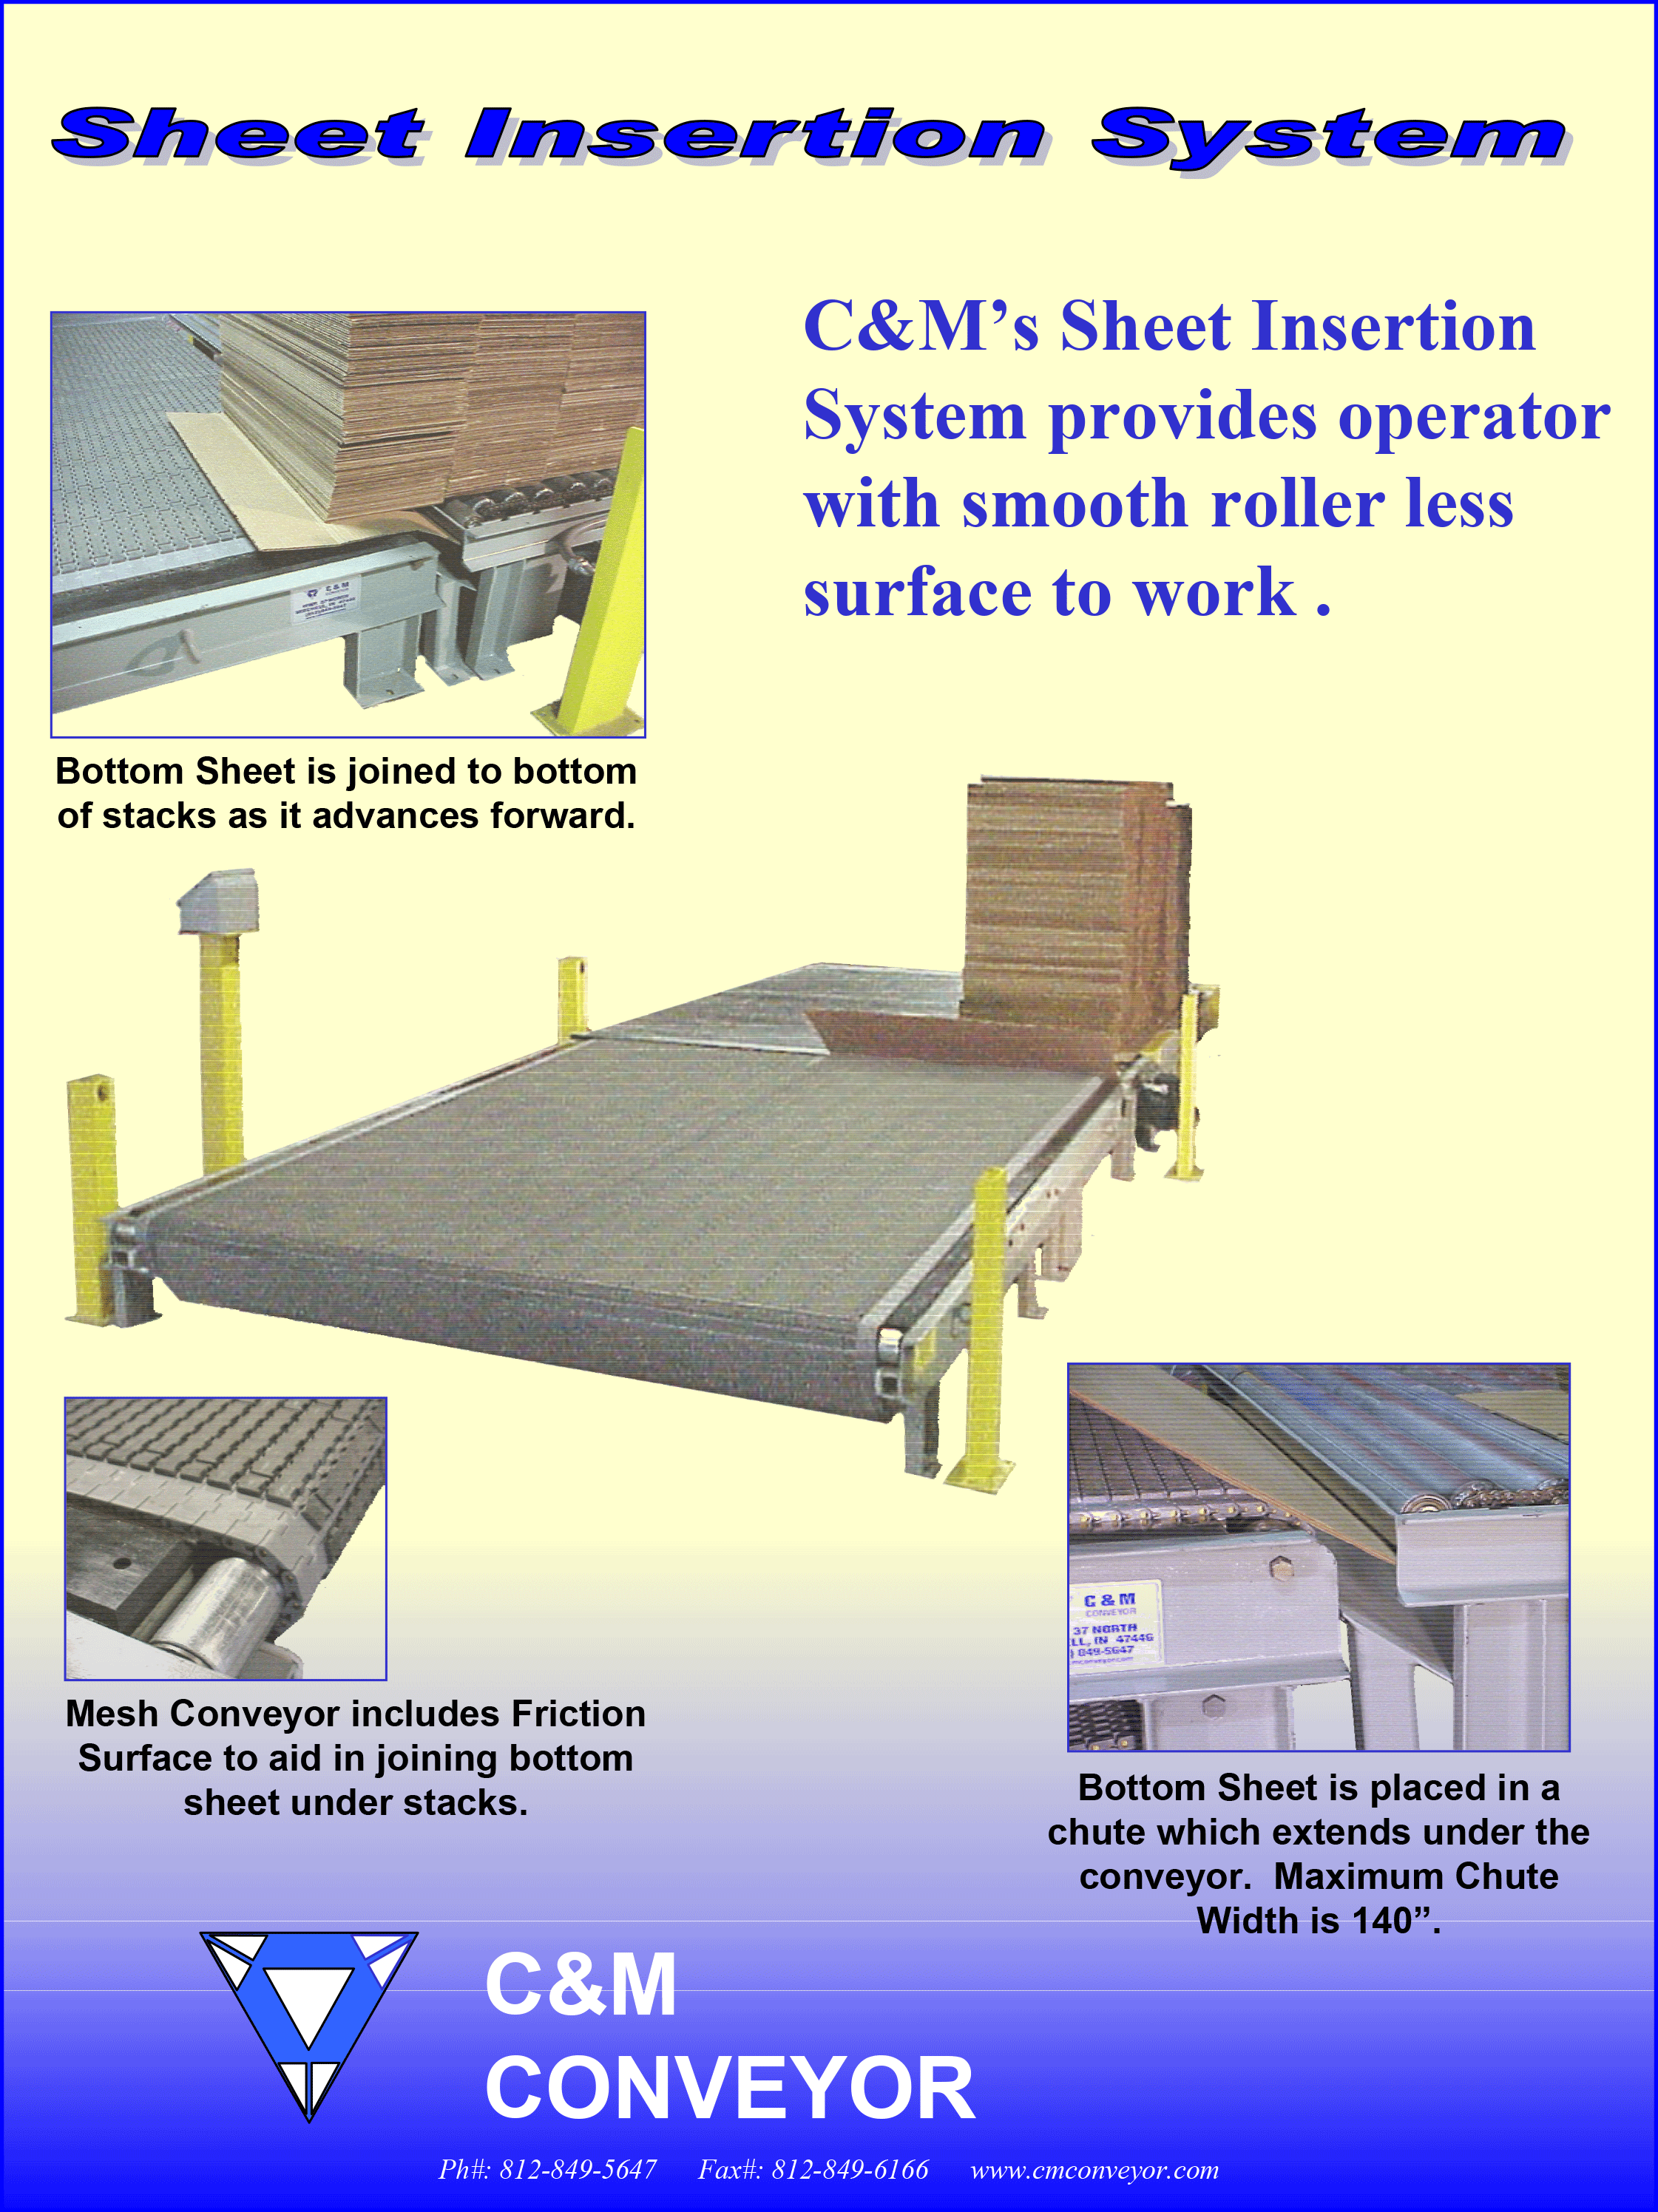 C & M's Sheet Insertion System can easily be added to join a bottom sheet to the bottom of stacks as it advances forward.